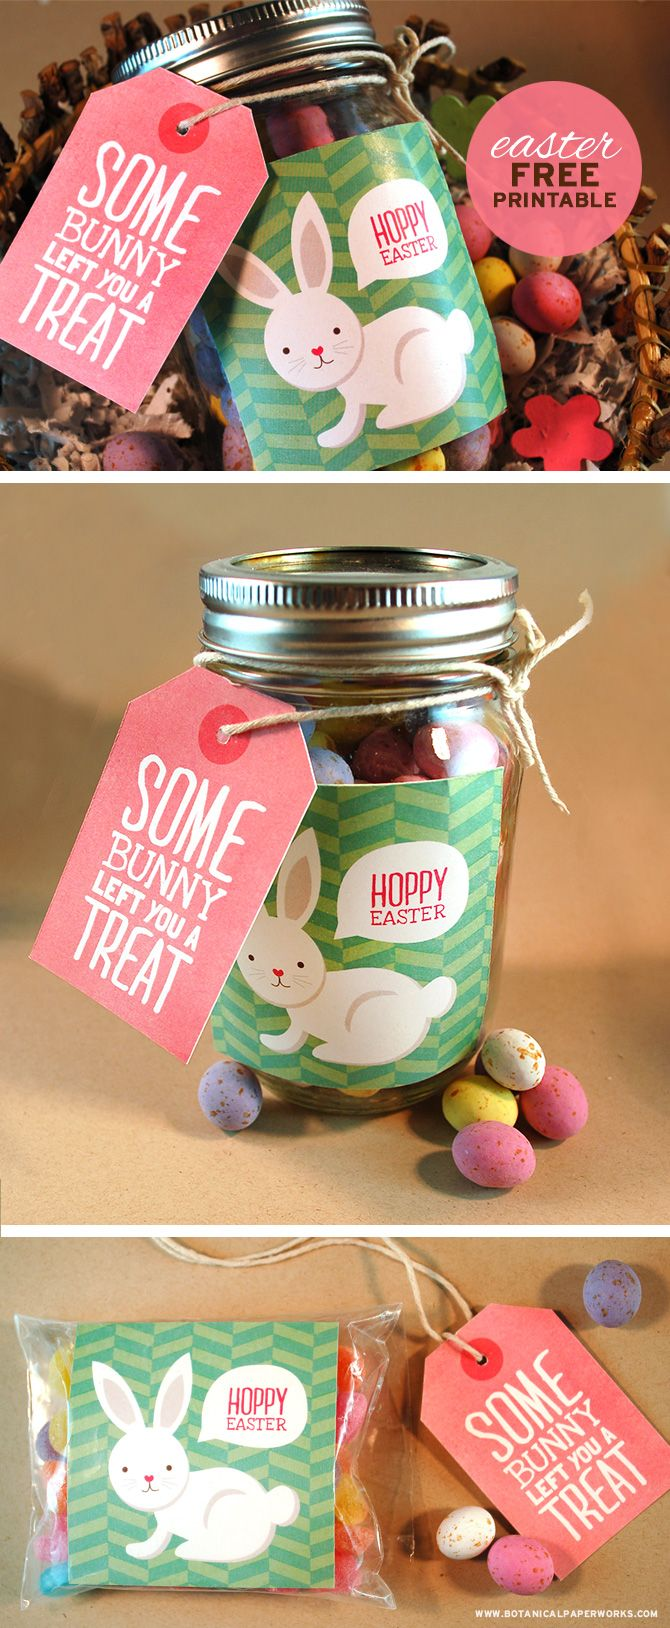 215 best easter gift ideas images on pinterest easter easter free printable easter treat tags labels negle